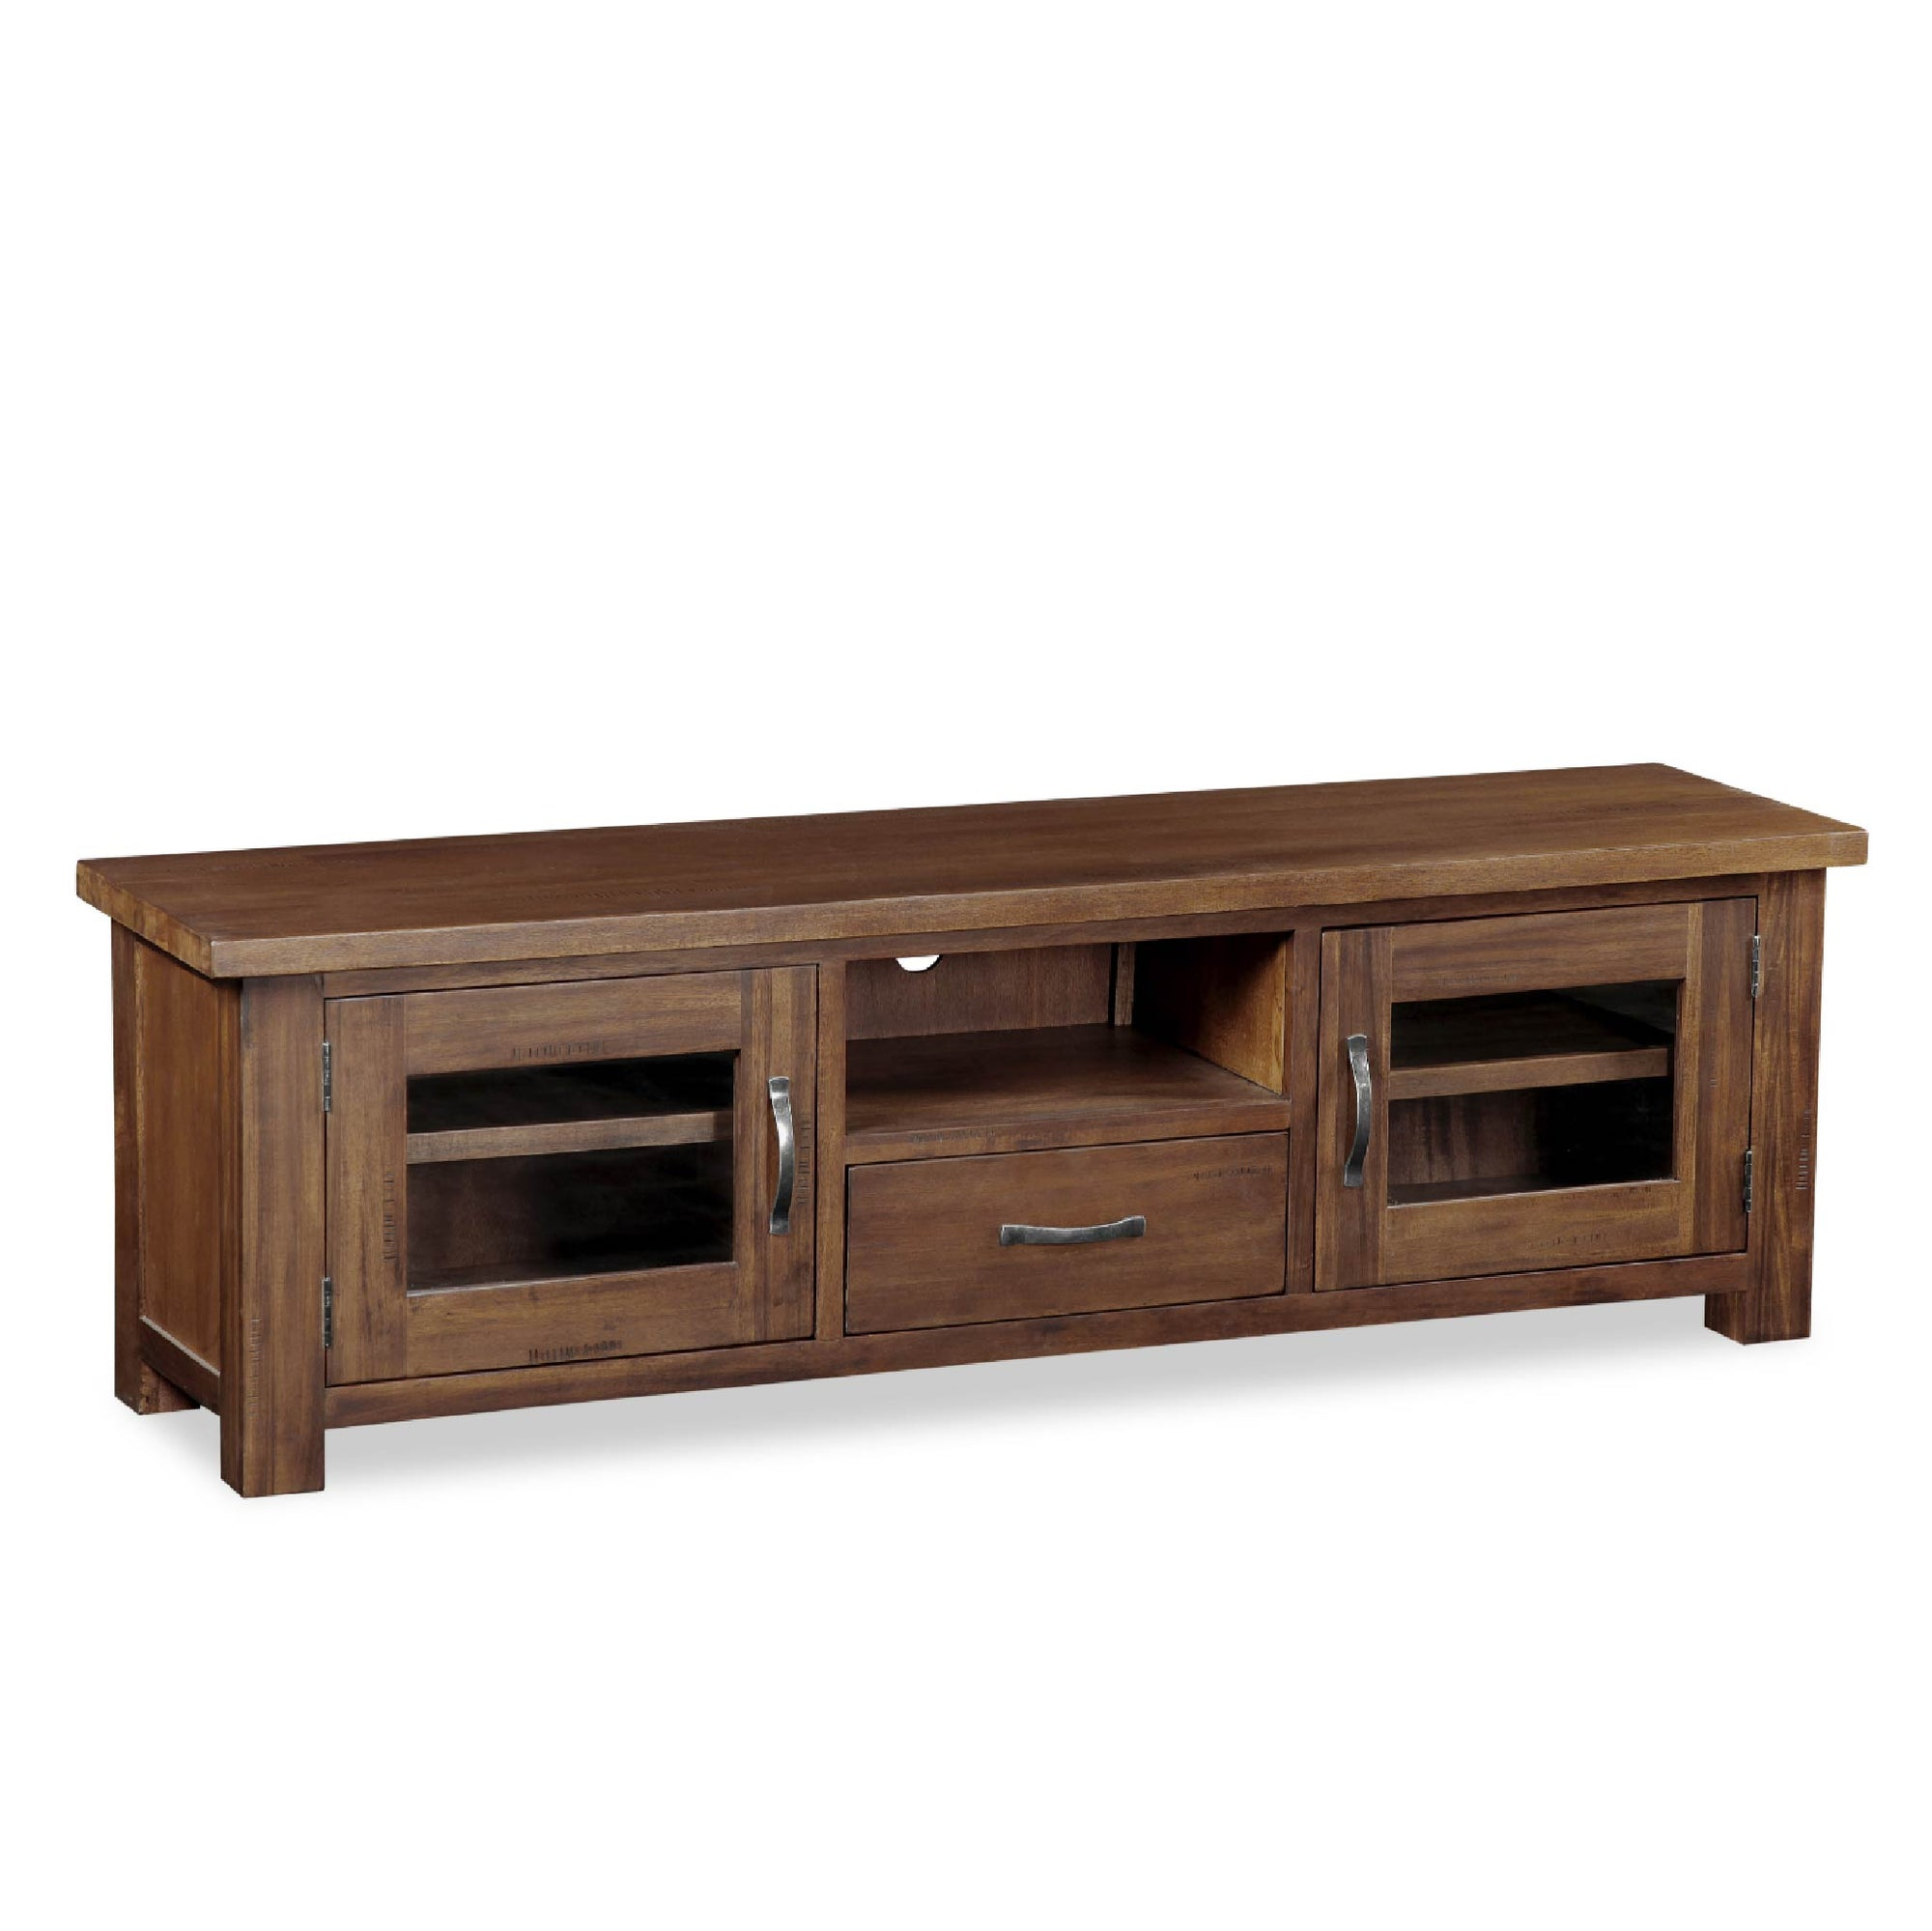 Ladock Large 180cm TV Unit by Roseland Furniture